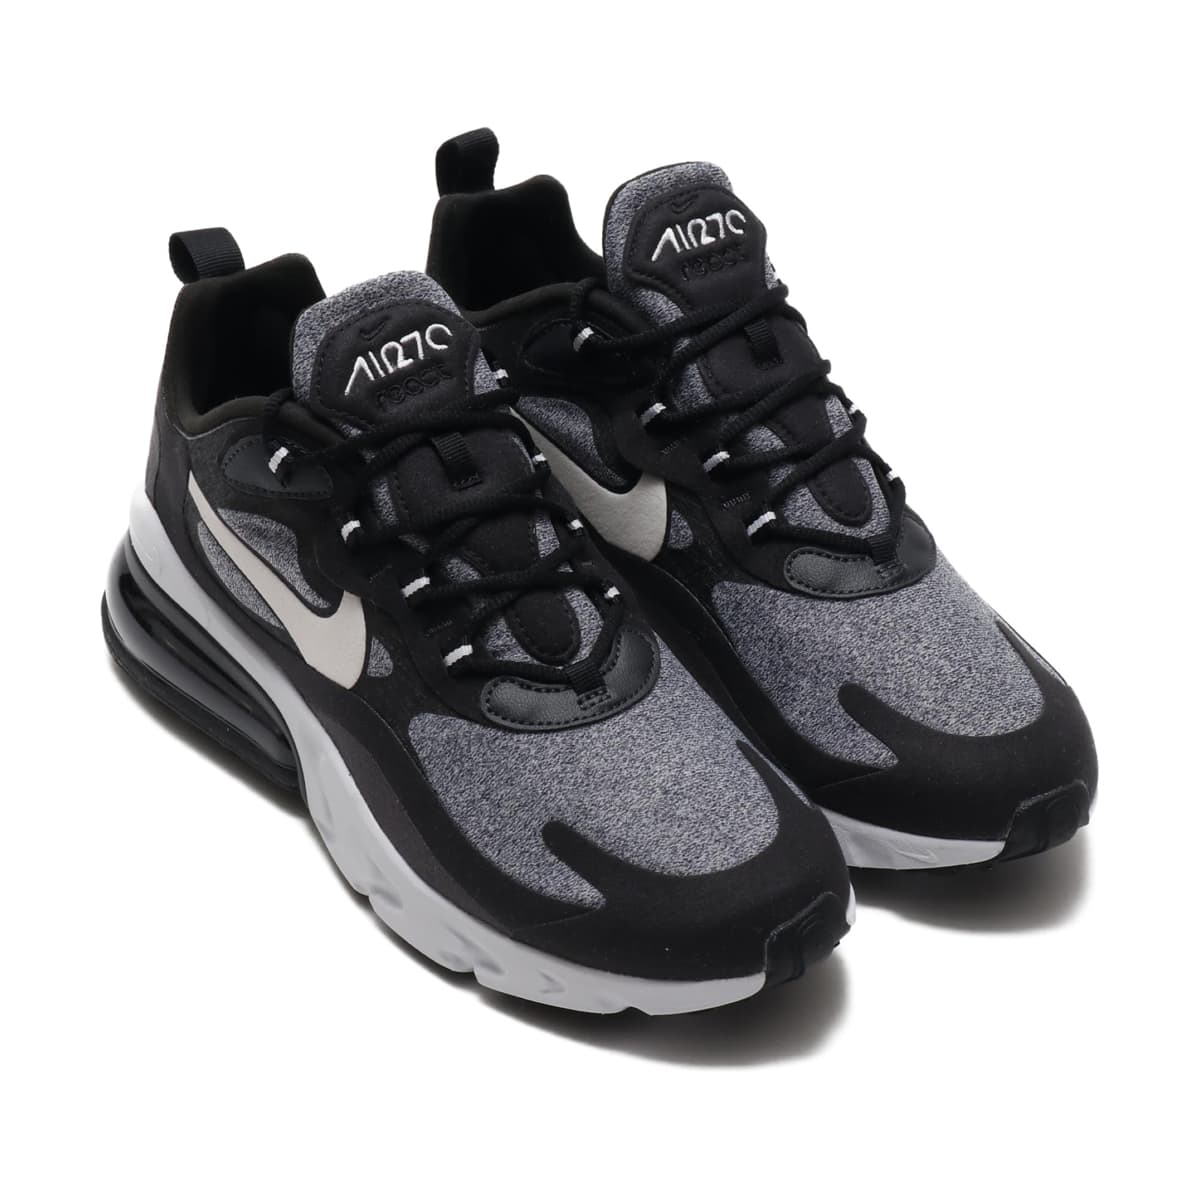 NIKE AIR MAX 270 REACT BLACK/VAST GREY-OFF NOIR 19FA-S_photo_large